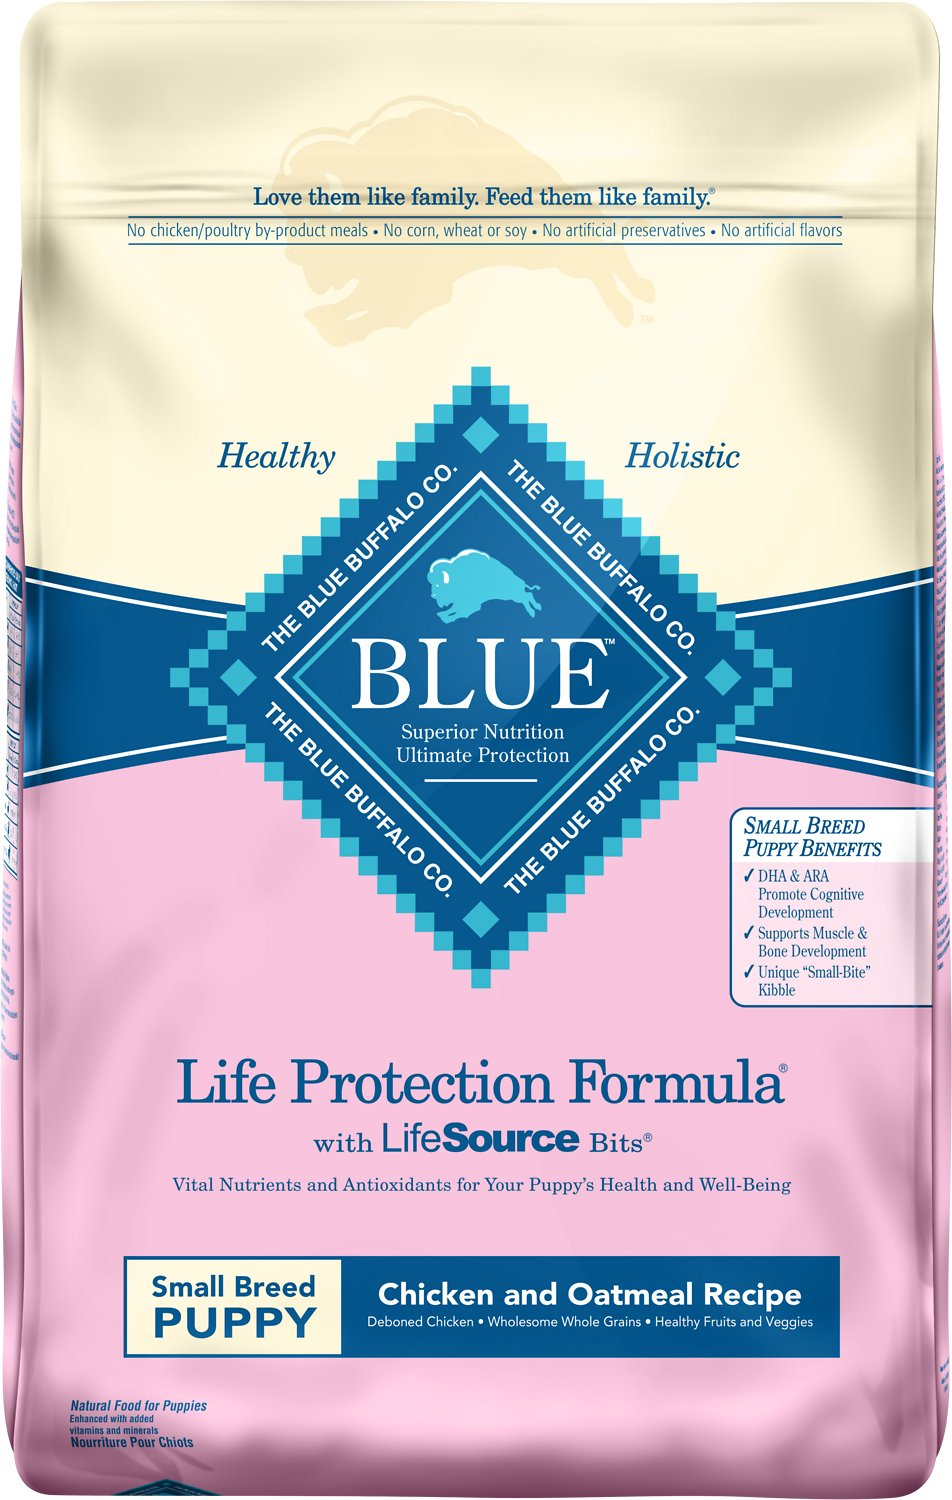 Blue Buffalo Life Protection Formula Small Breed Puppy Chicken & Oatmeal Recipe Dry Dog Food Image